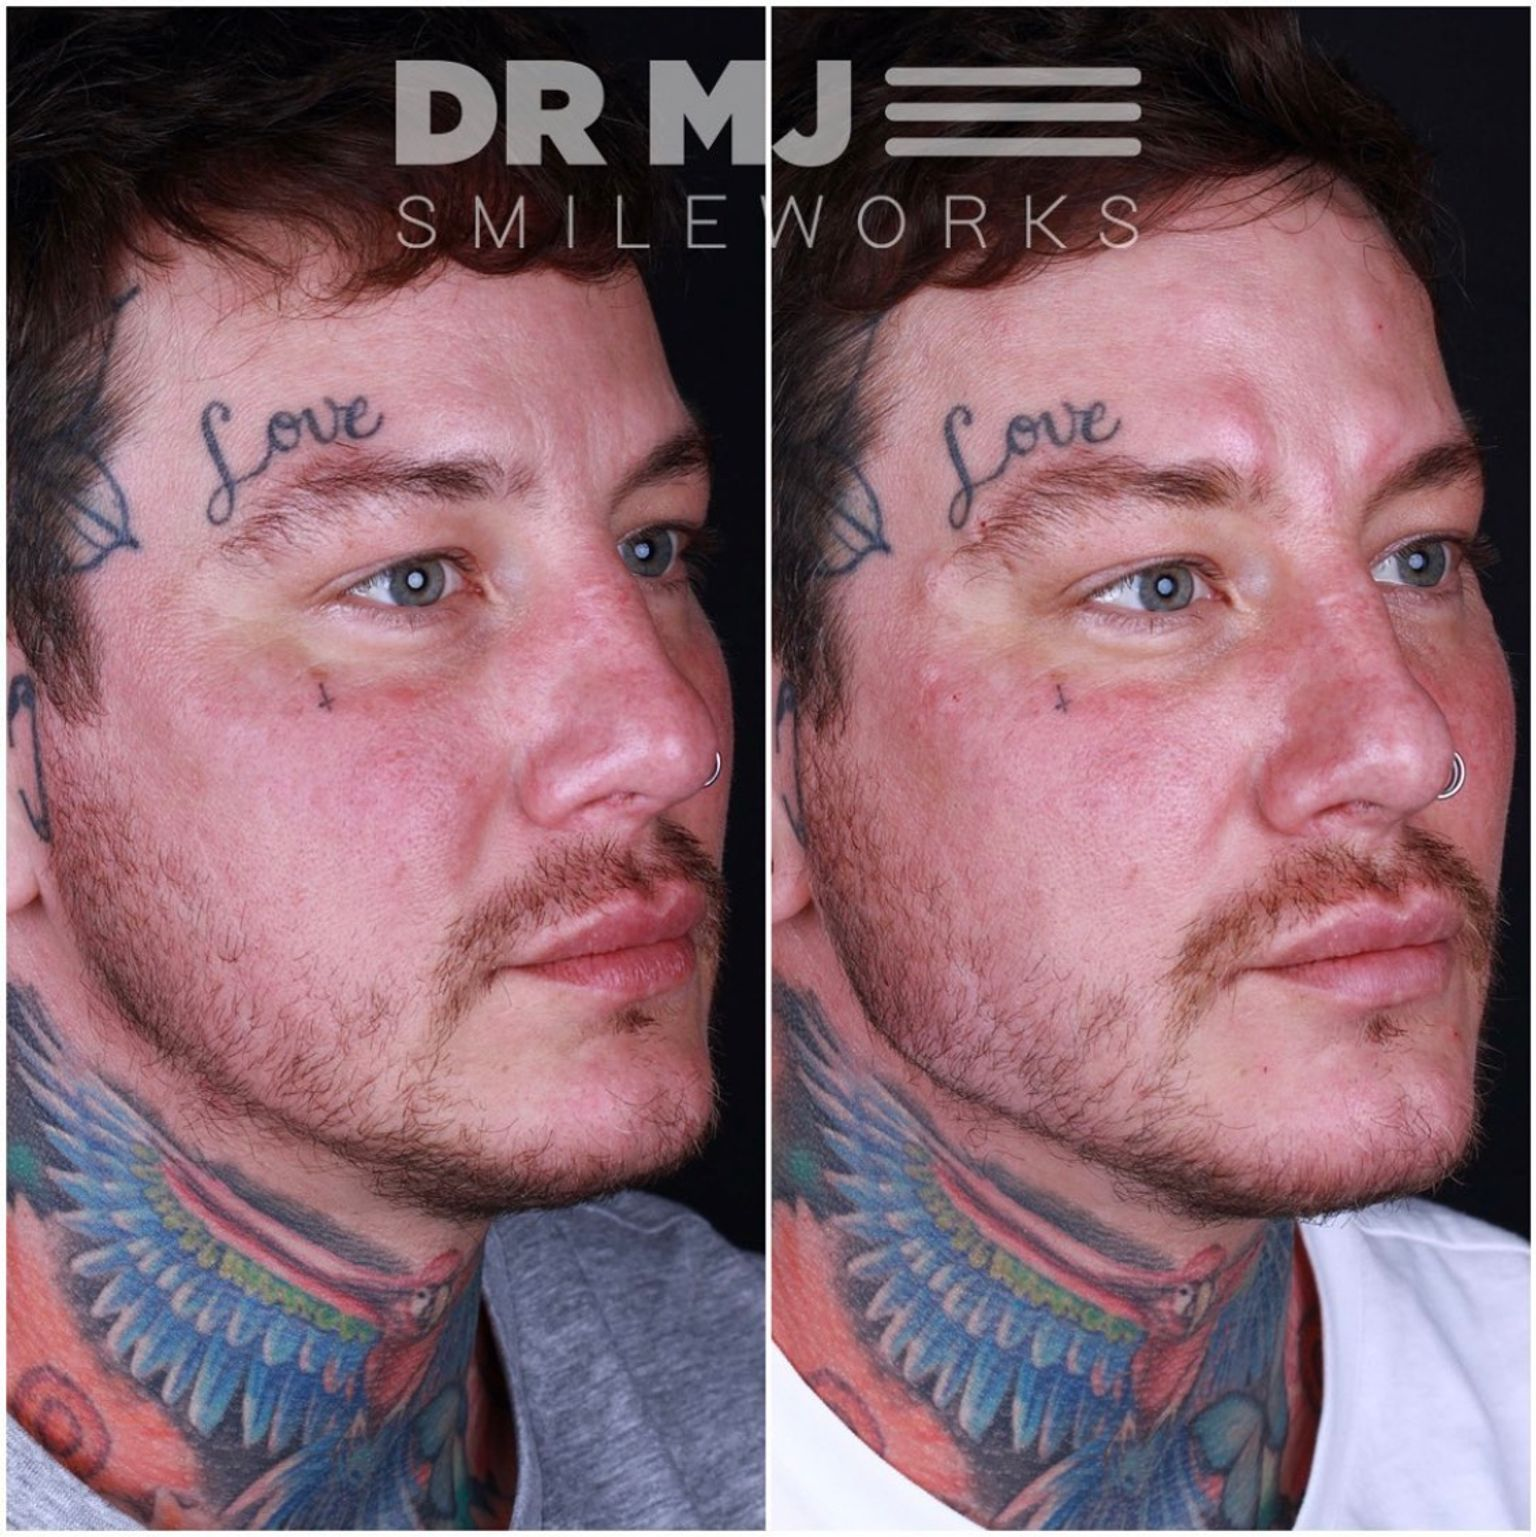 Dr MJ - Jawline filler before and after - Glowday